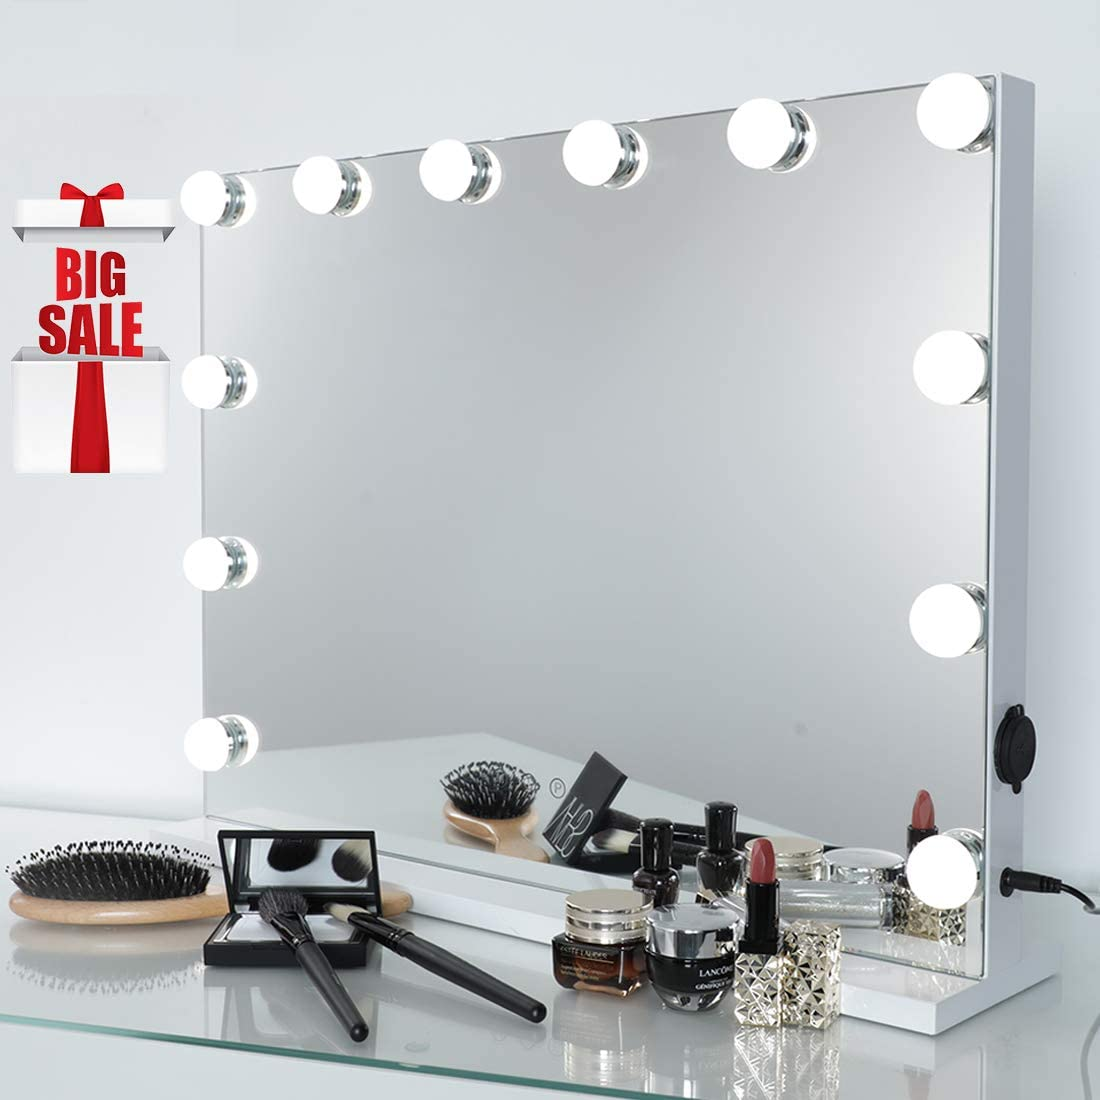 iCREAT Hollywood Makeup Mirror, Lighted Vanity Mirror, Cosmetic Mirror with 12 Dimmable Bulbs, Touchscreen Control Mirror with USB Outlet, White H16.93 x W22.83